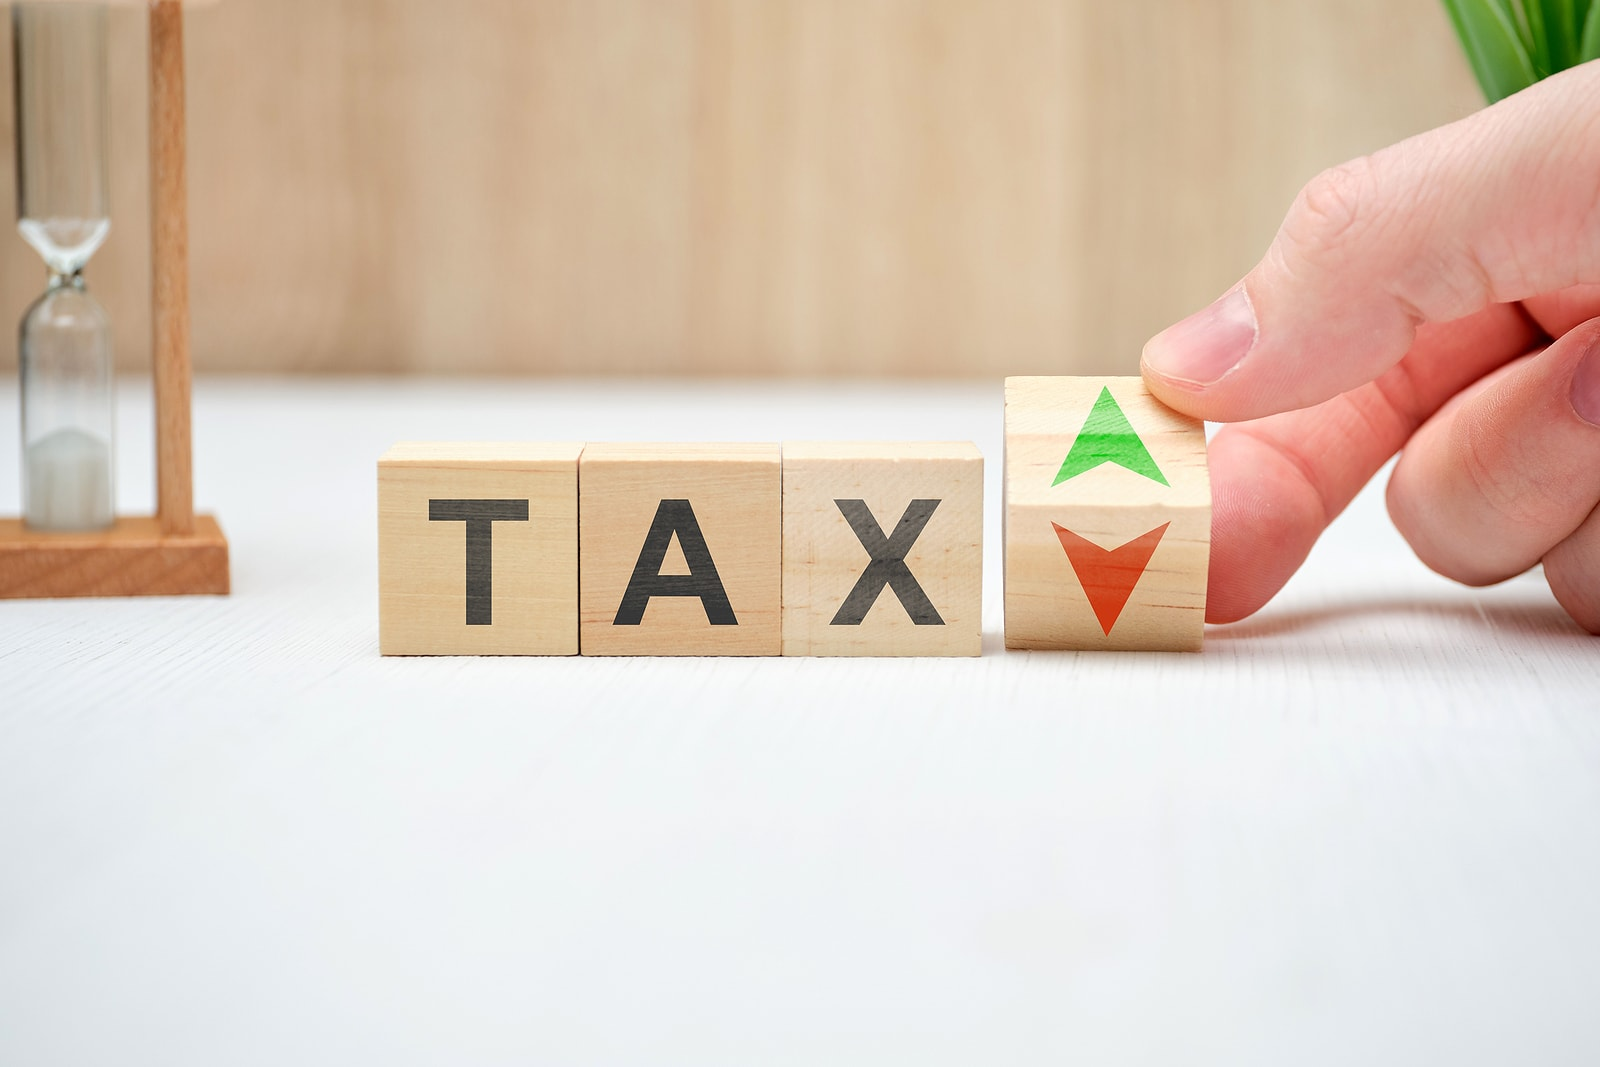 bigstock-Tax-Concept-With-Up-And-Down-A-365216155-min